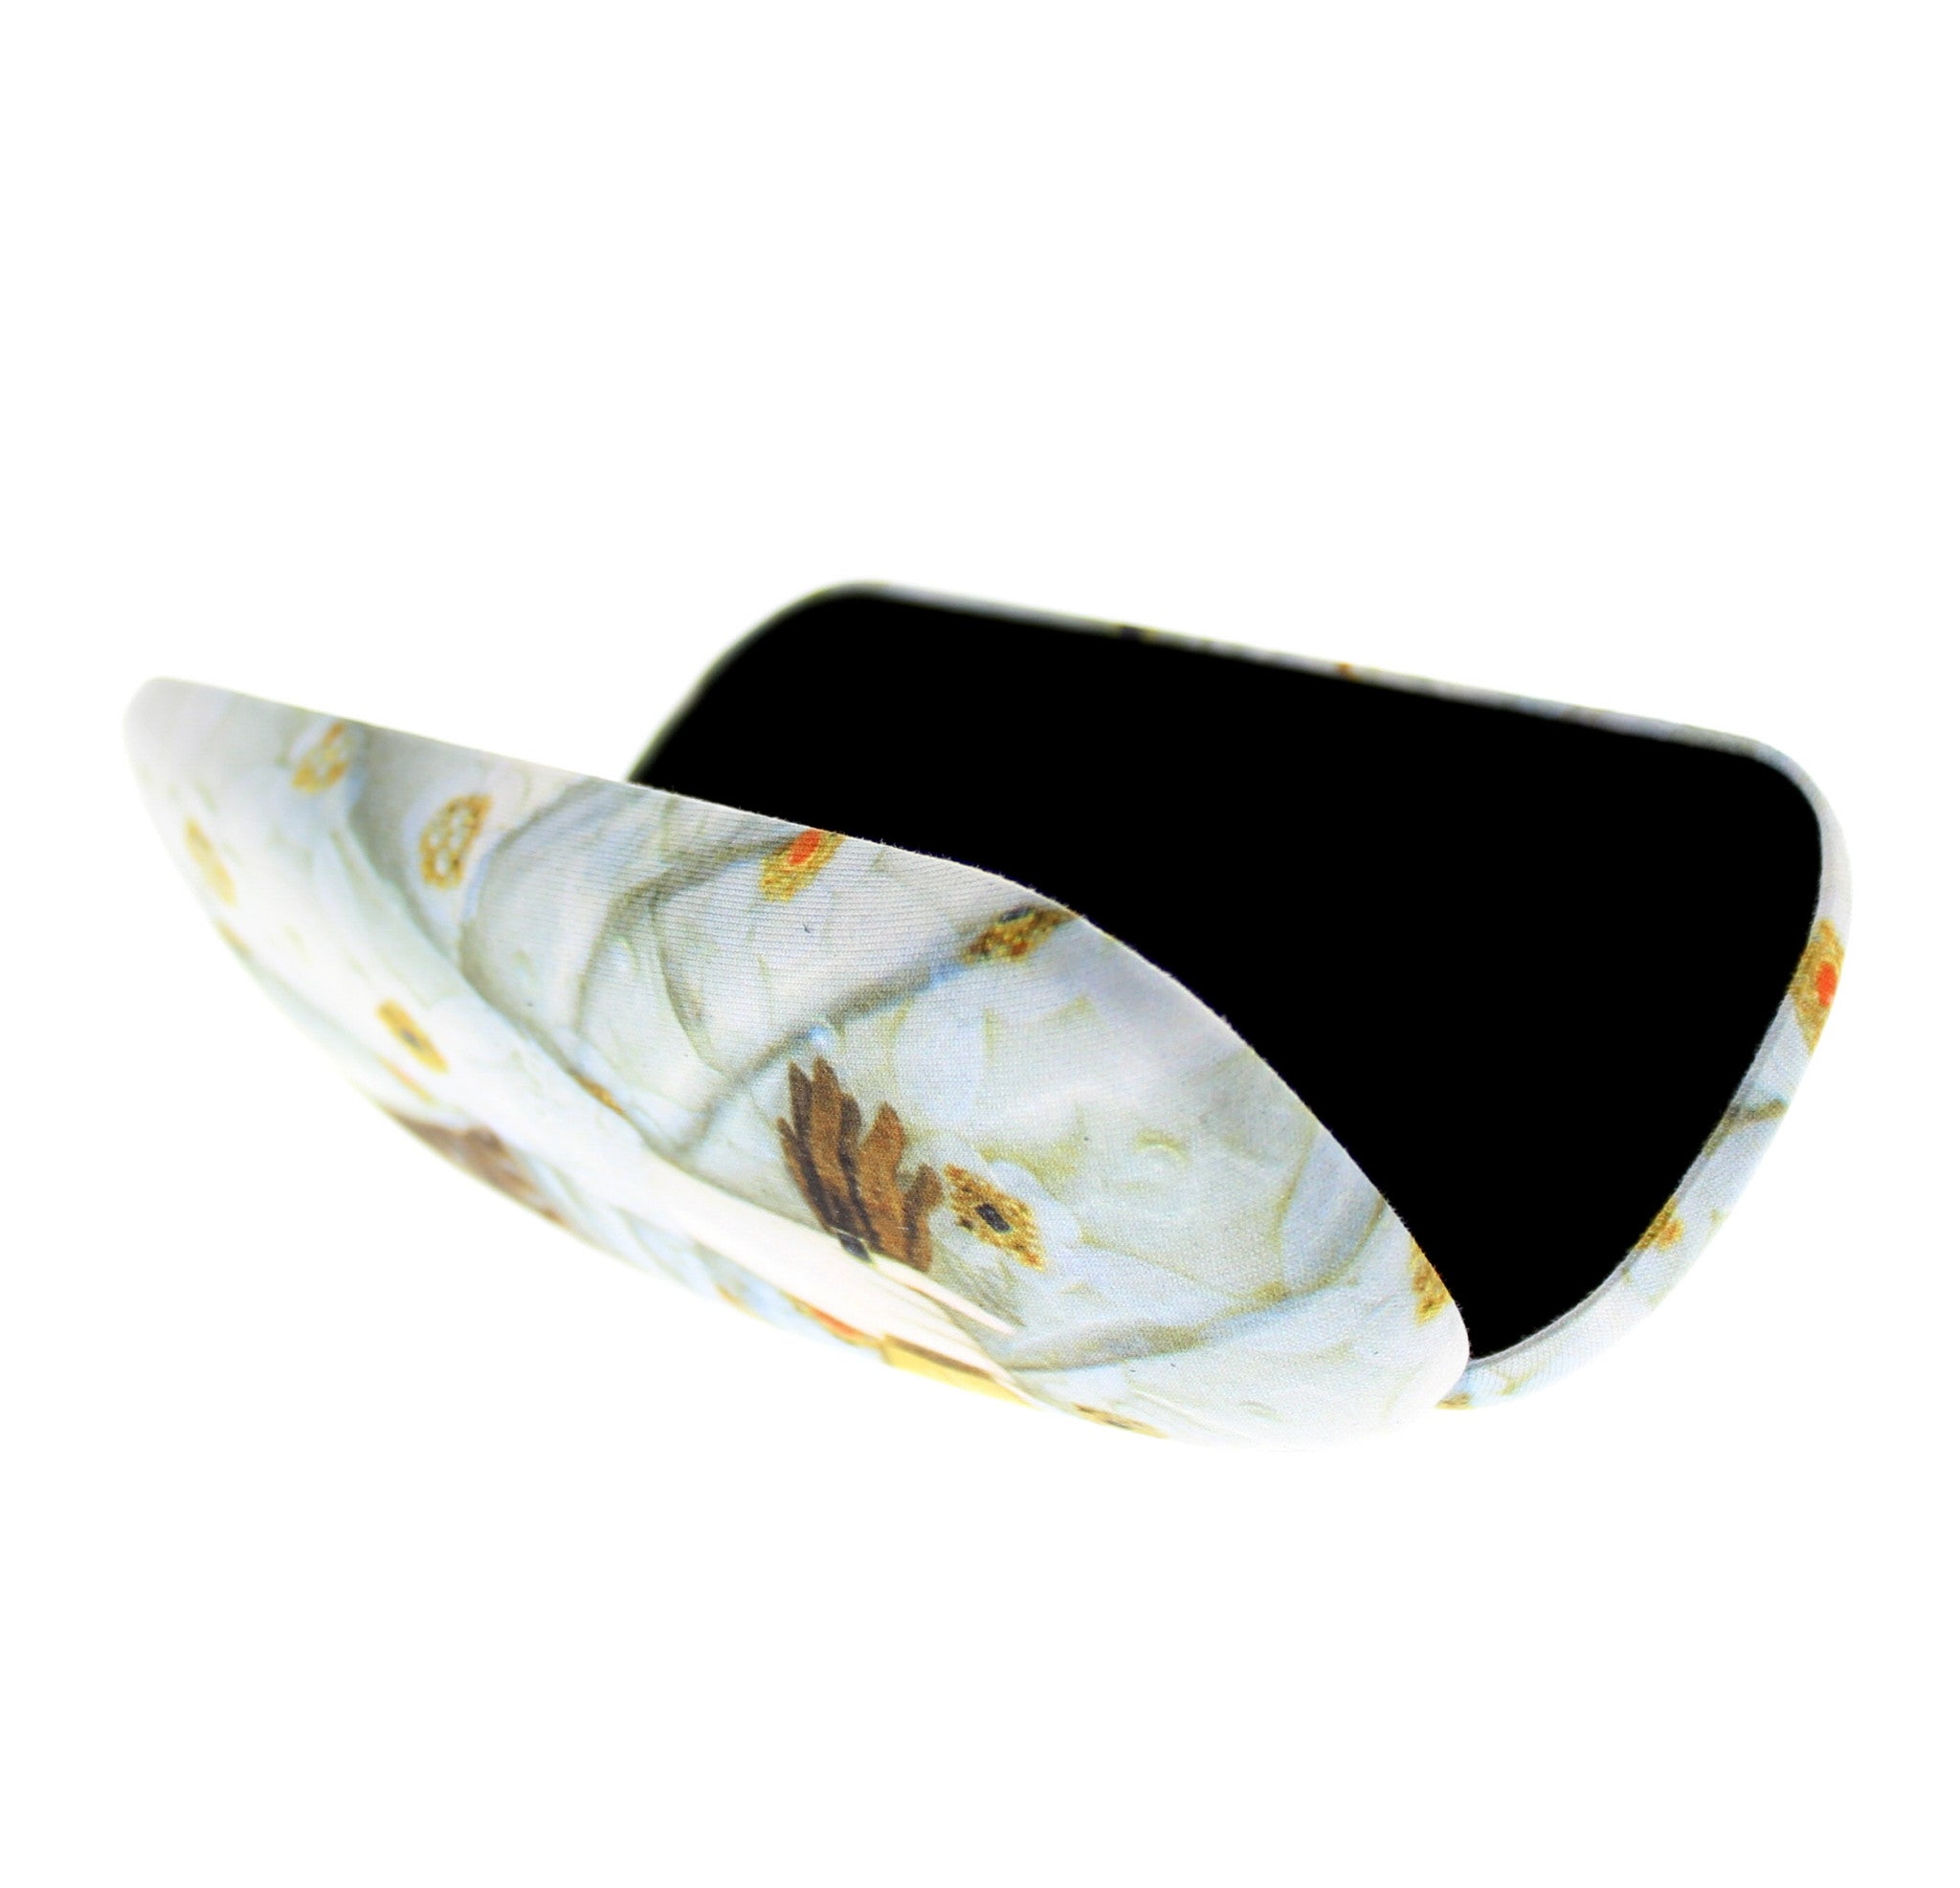 Elizabeth I Glasses Case